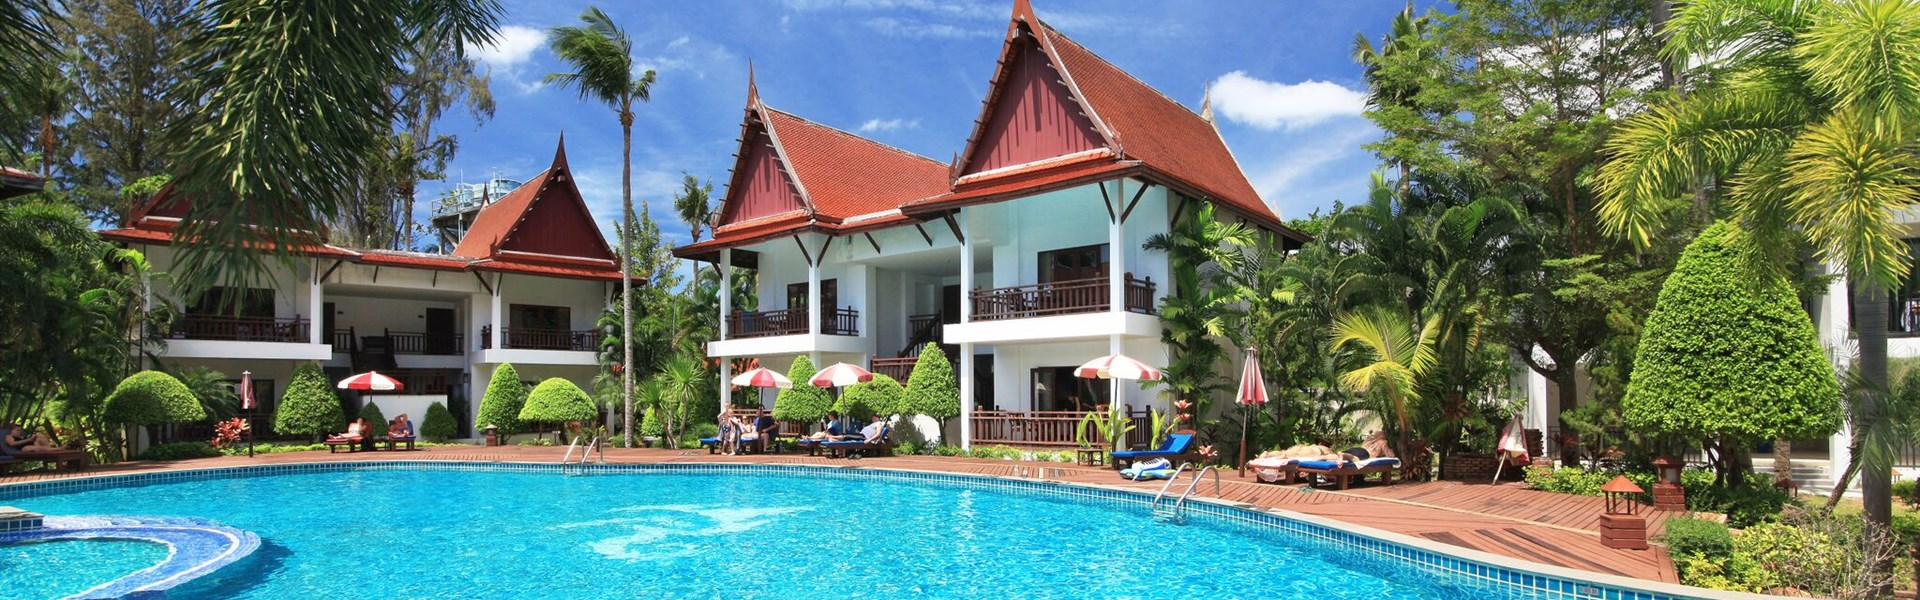 Marco Polo - Royal Lanta Resort Koh Lanta -